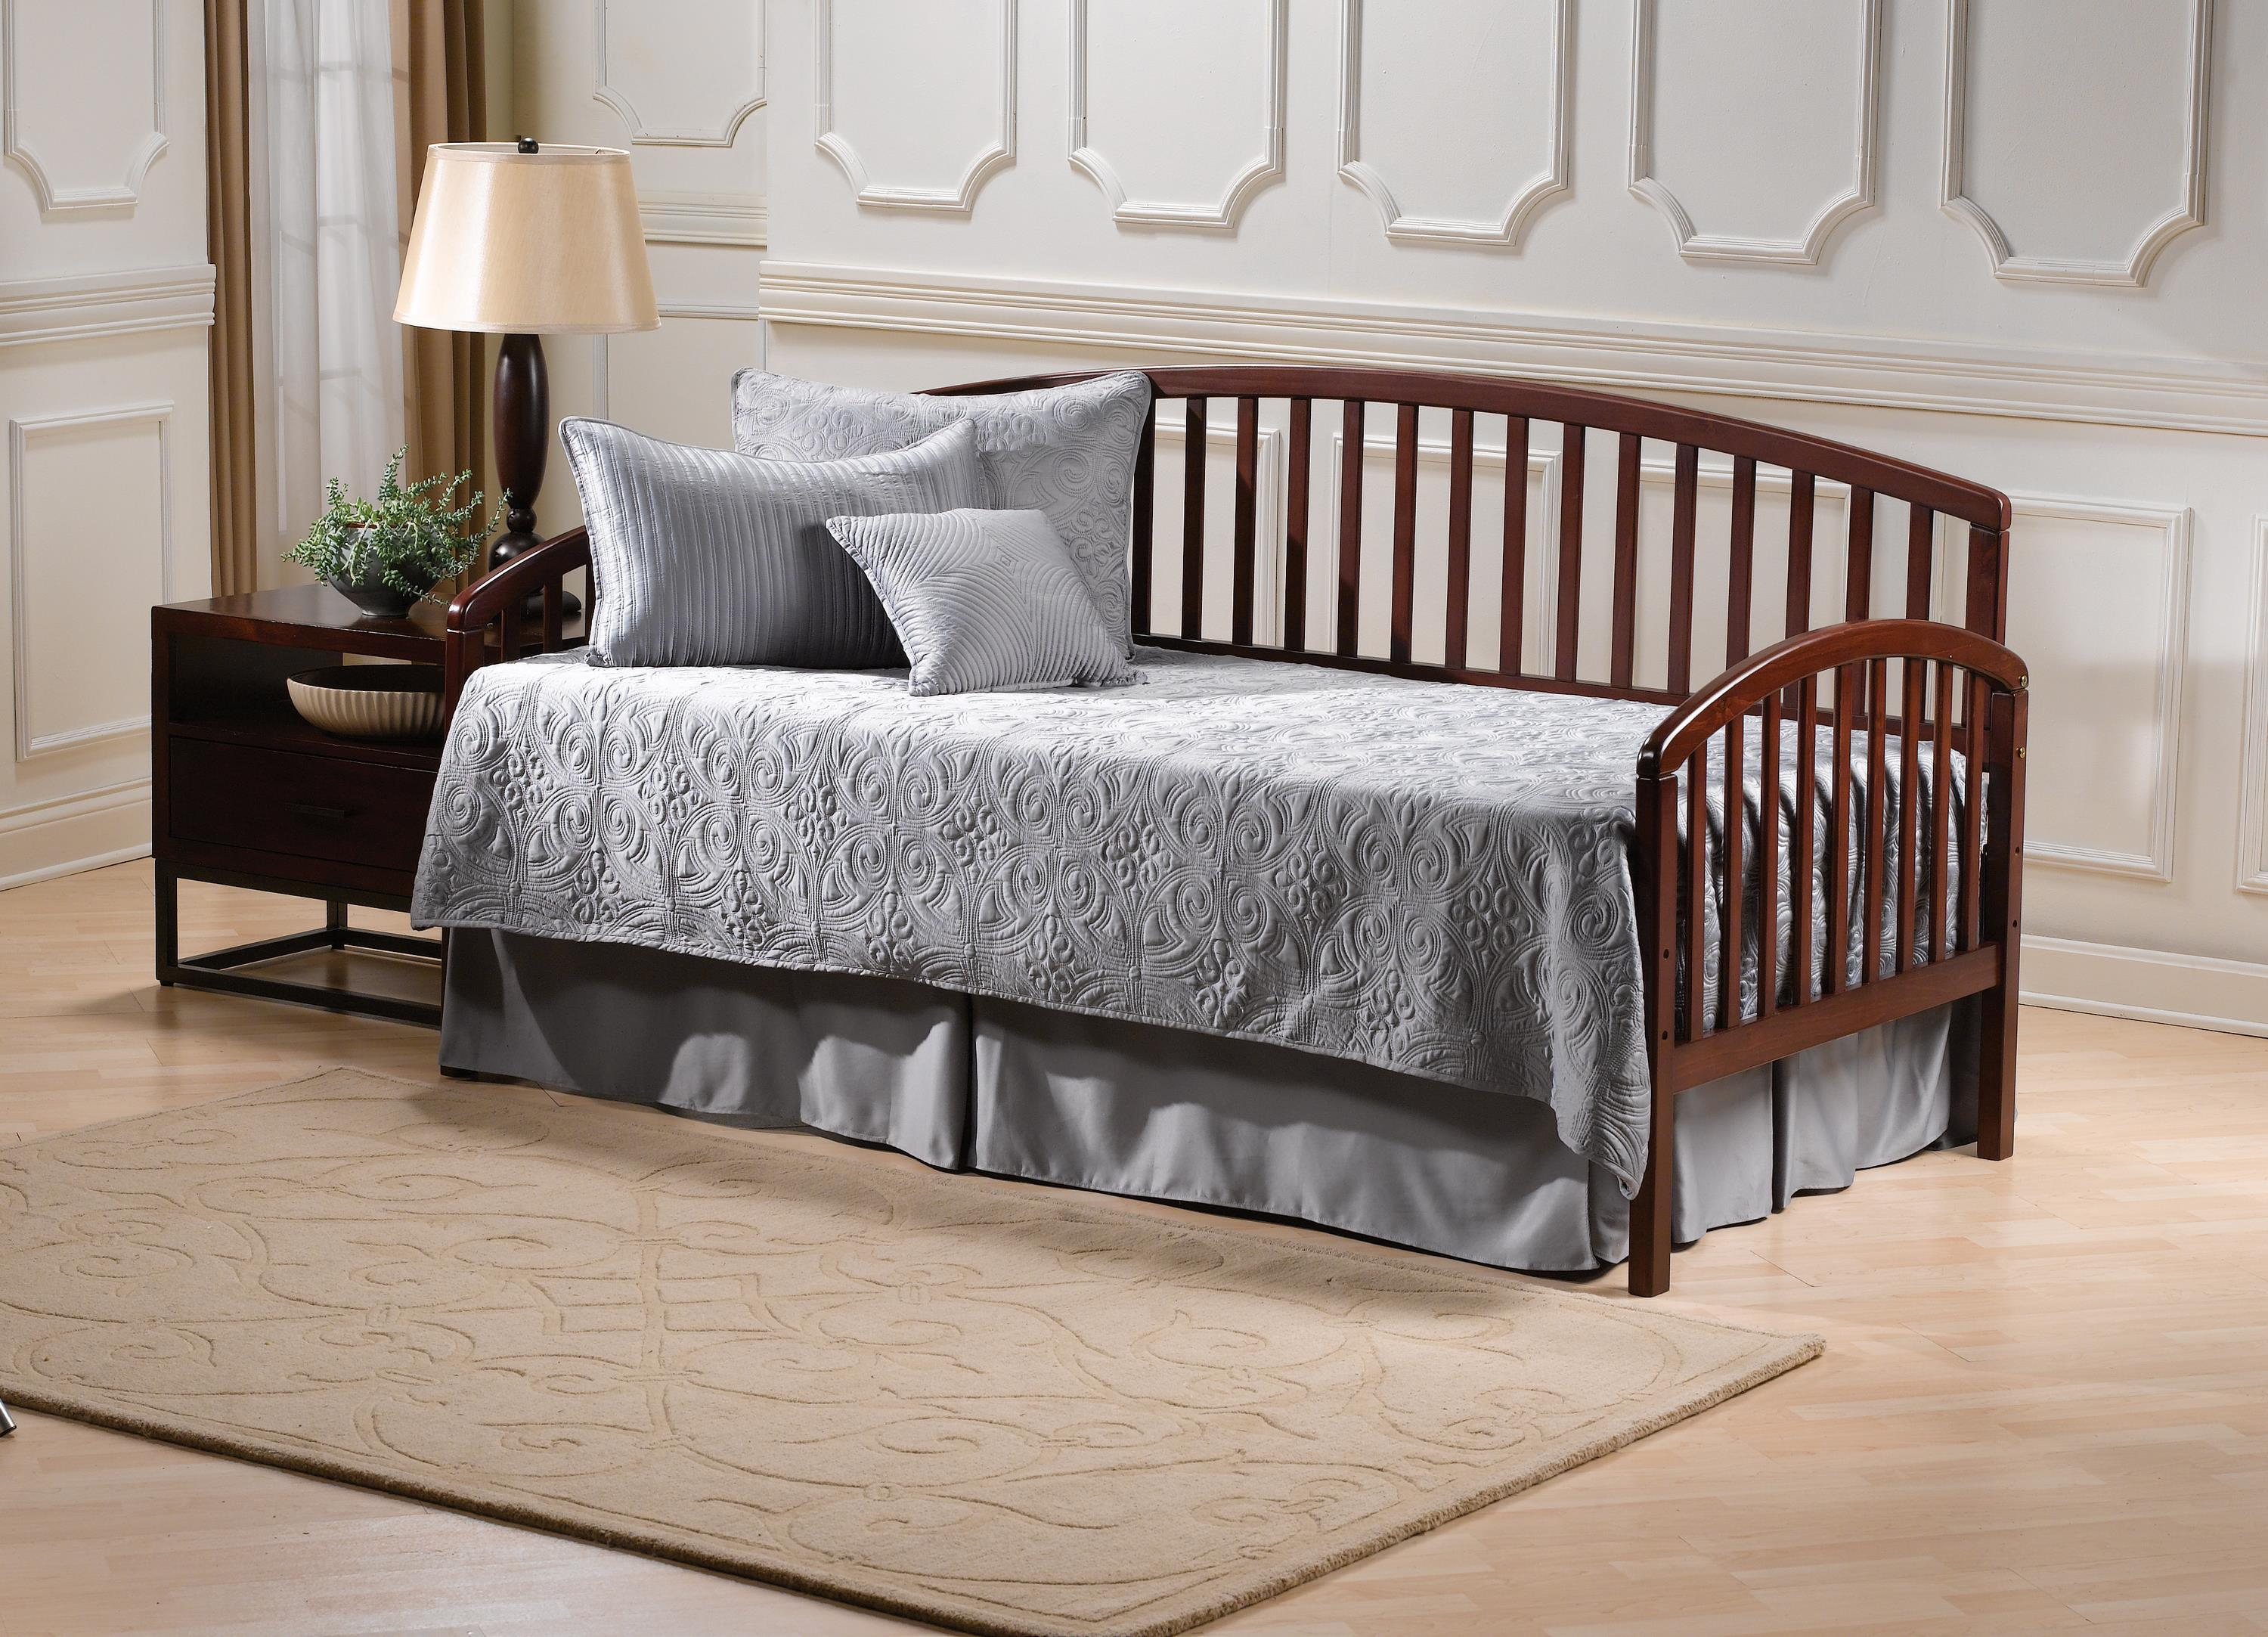 Hillsdale Daybeds Twin Carolina Daybed - Item Number: 1593DBLH